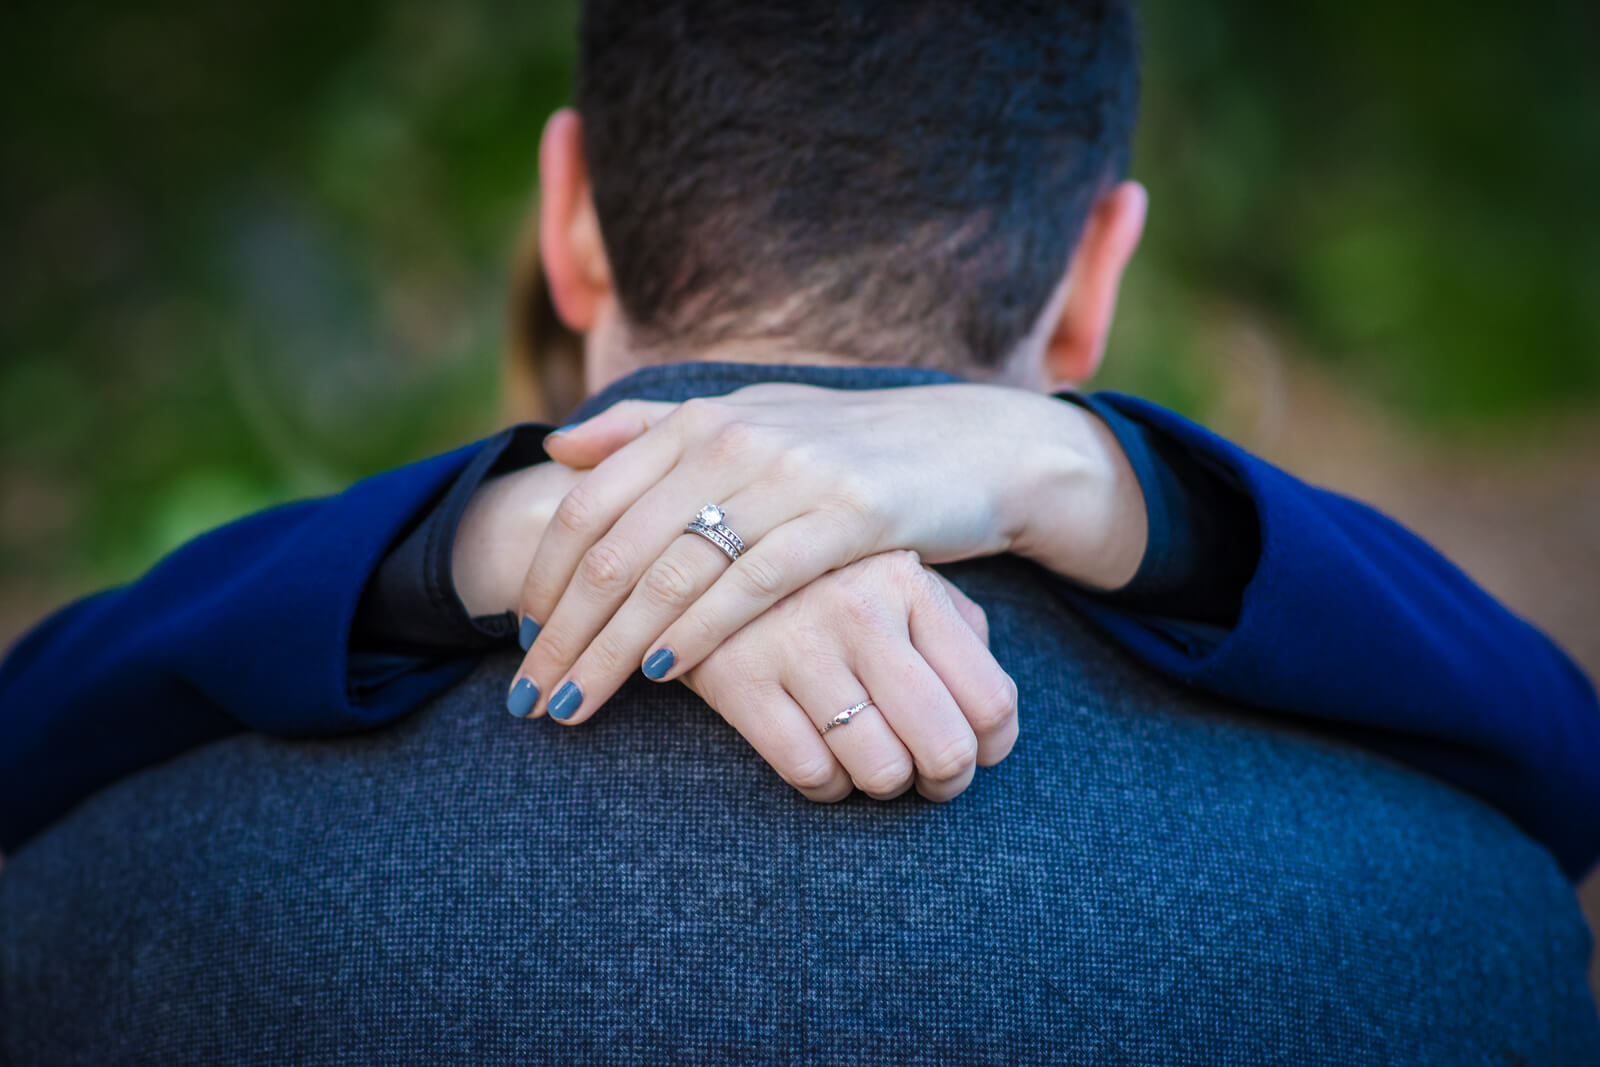 Lady's hands around her fiance's neck with enggagement ring and blue nails